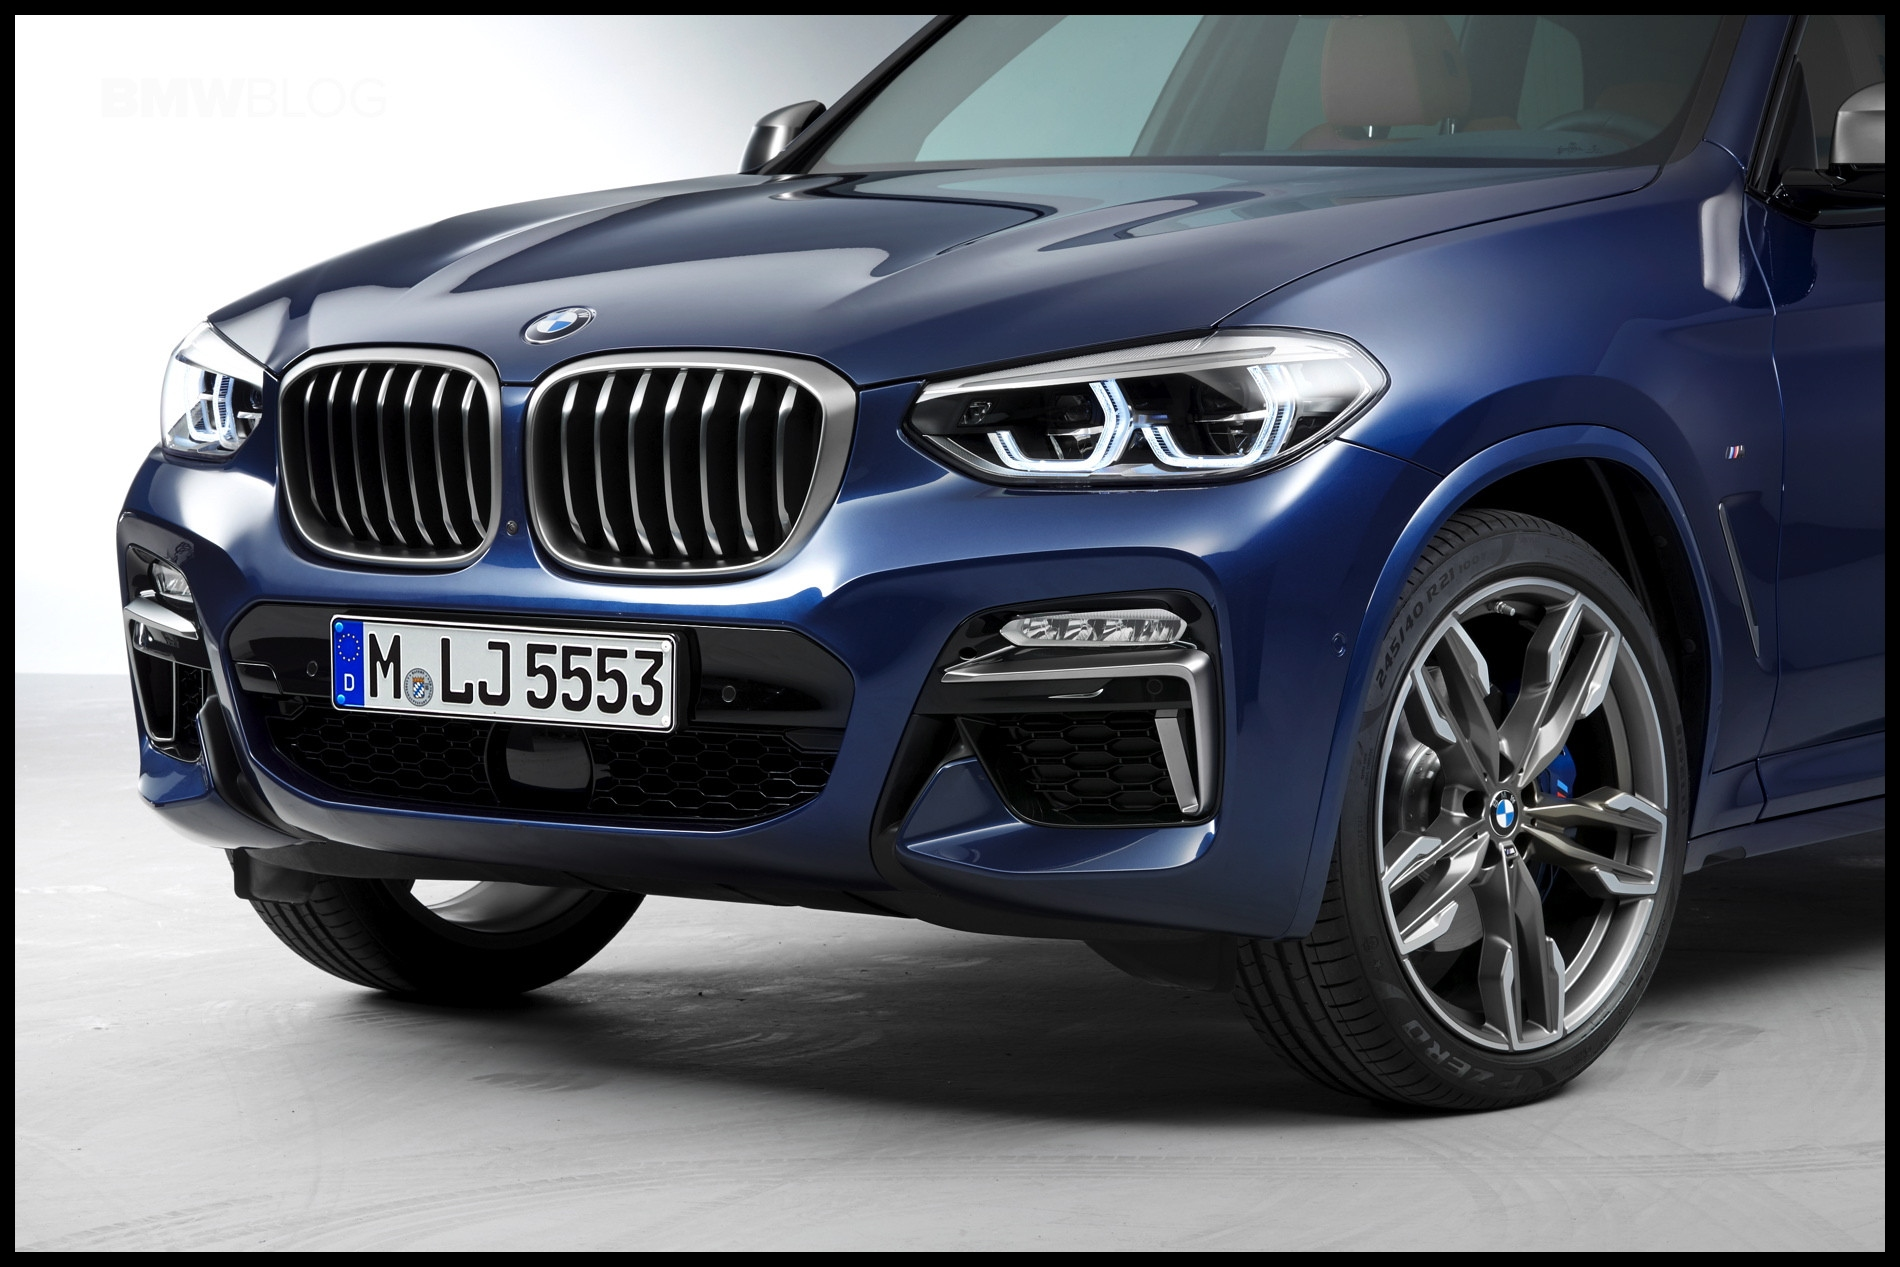 Bmw X3 2018 Price Usa Lovely 2018 Bmw X3 Price Starts at 47 000 Euros for